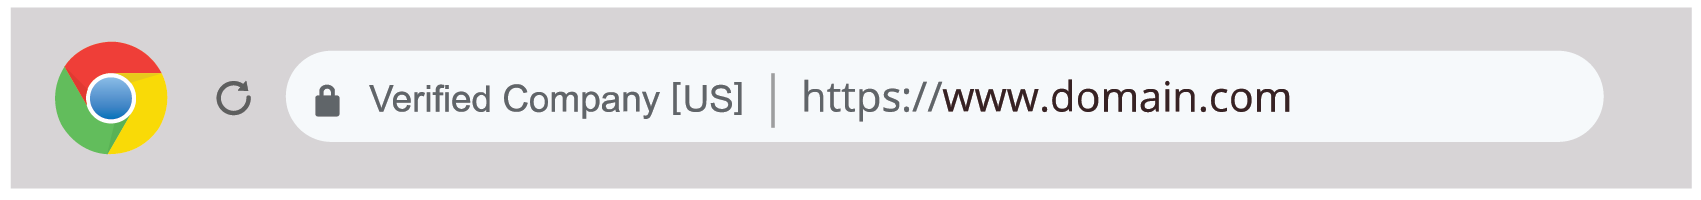 how to spot a fake website, google chrome extended validation indicator